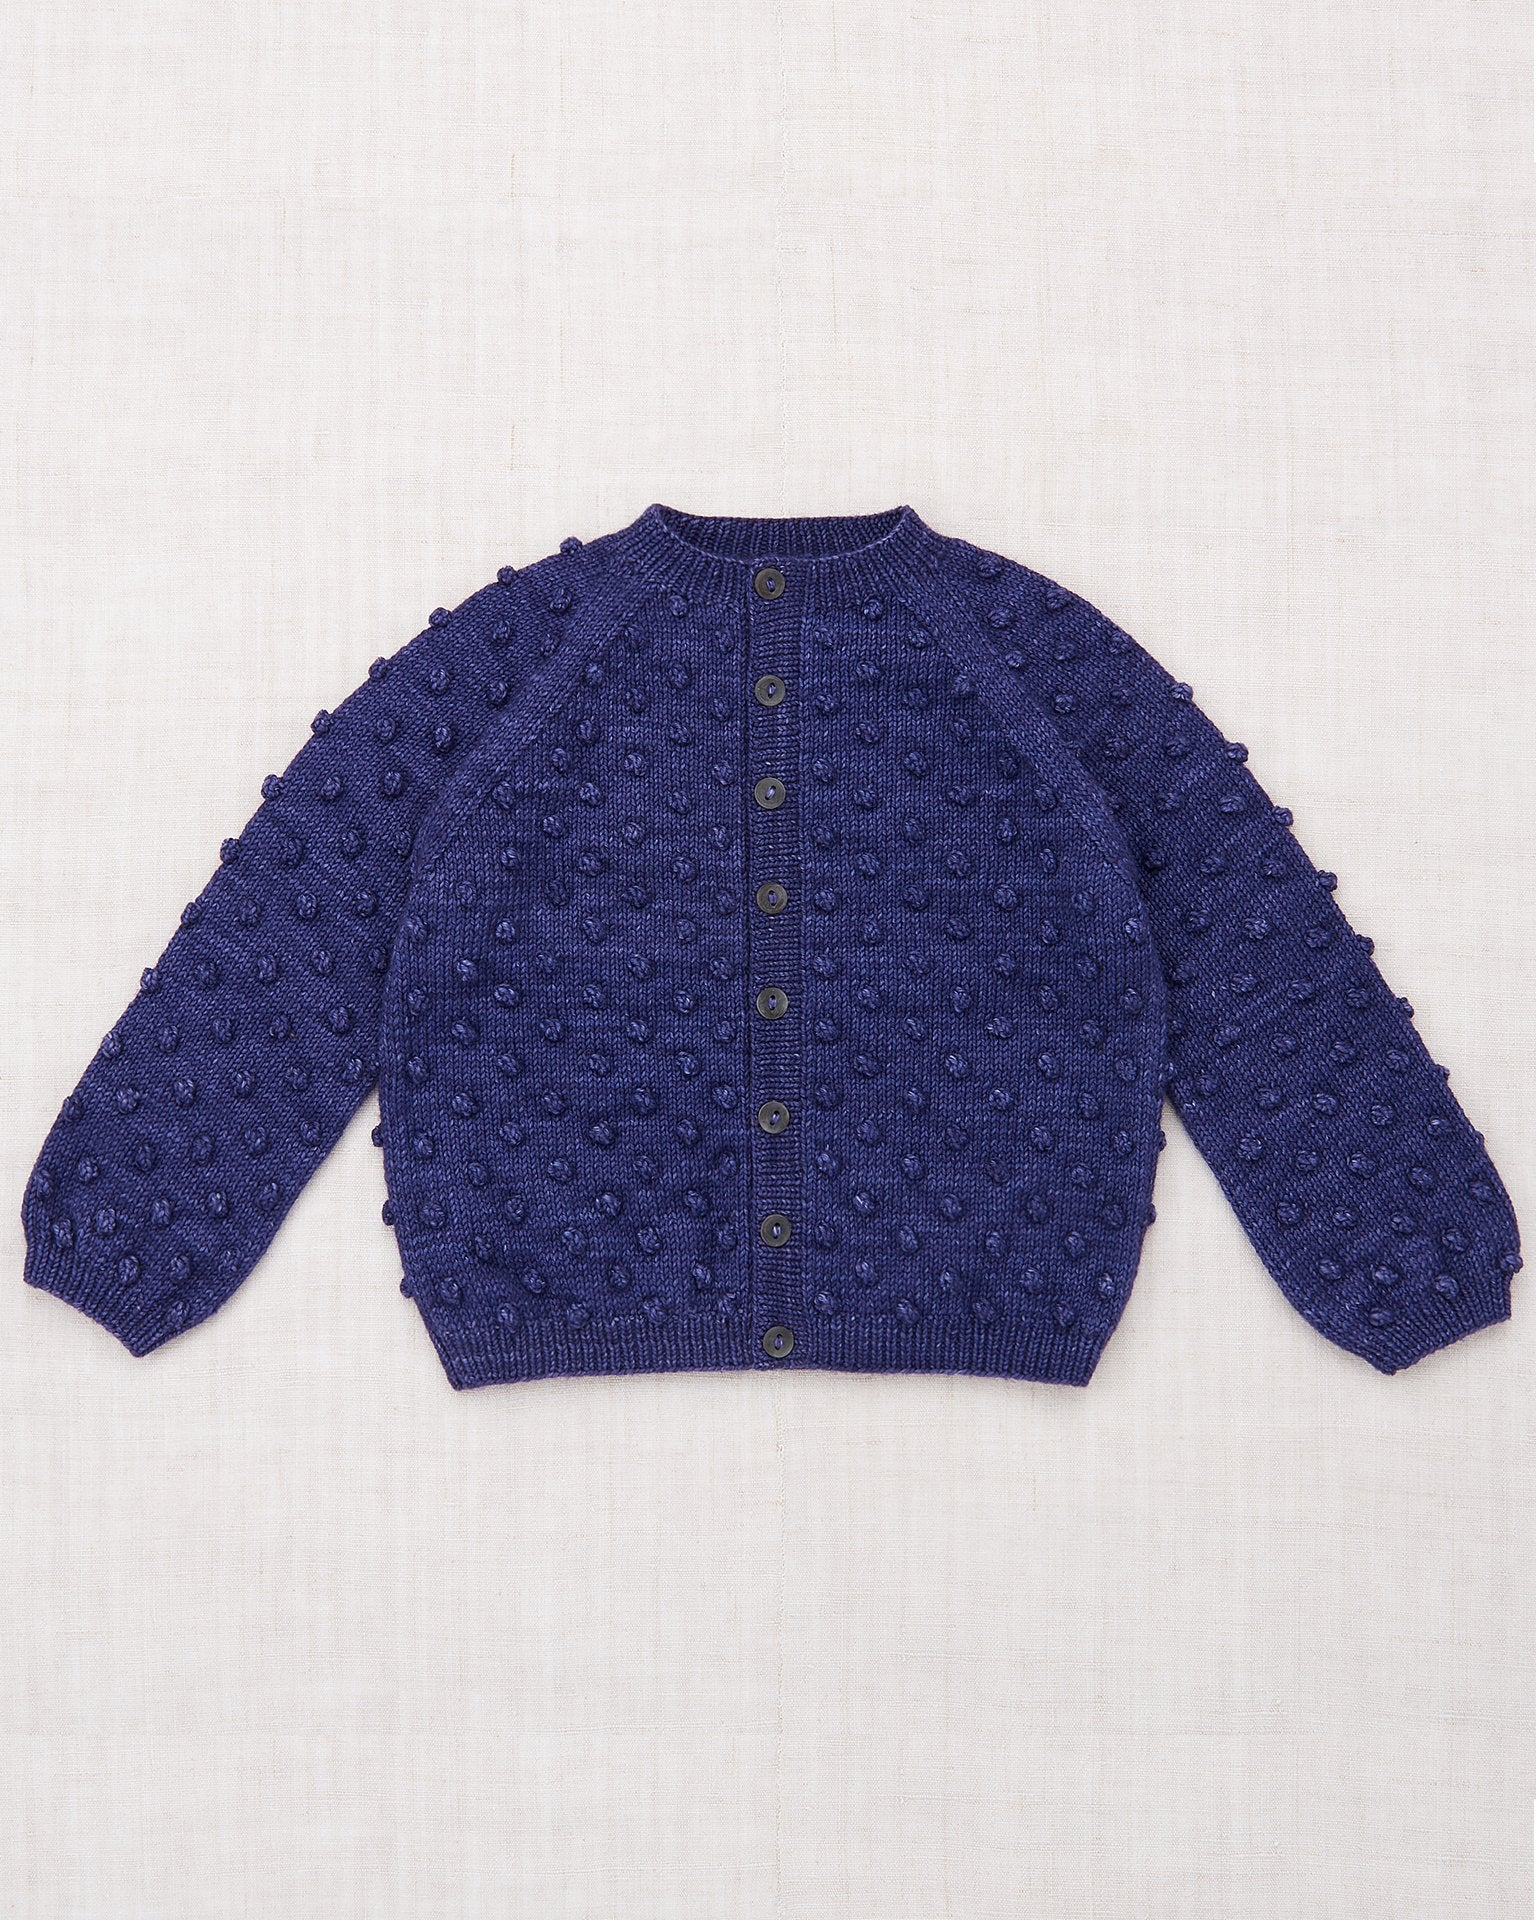 Little misha + puff girl popcorn cardigan in violet